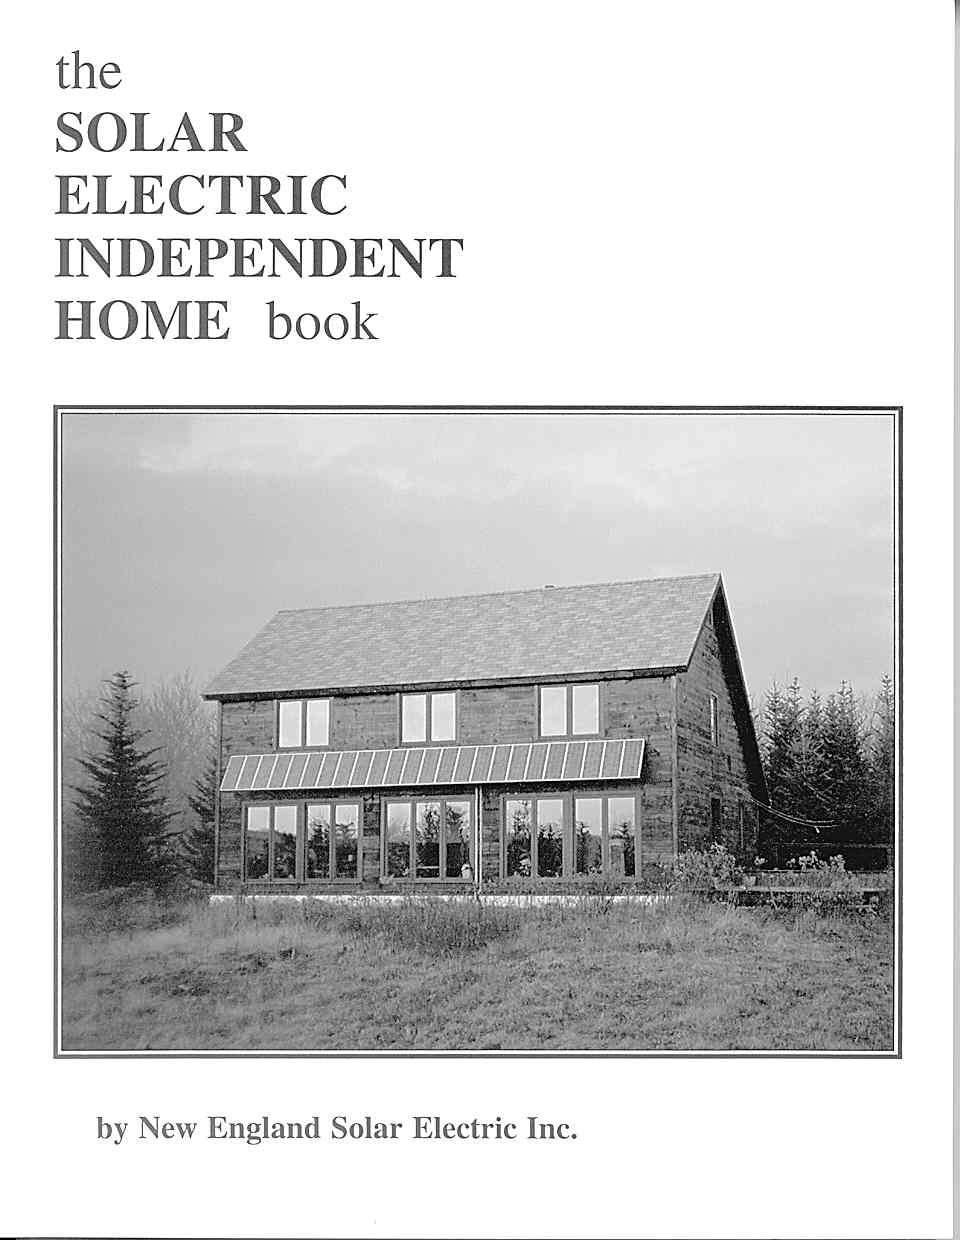 THE SOLAR ELECTRIC INDEPENDENT HOME BOOK